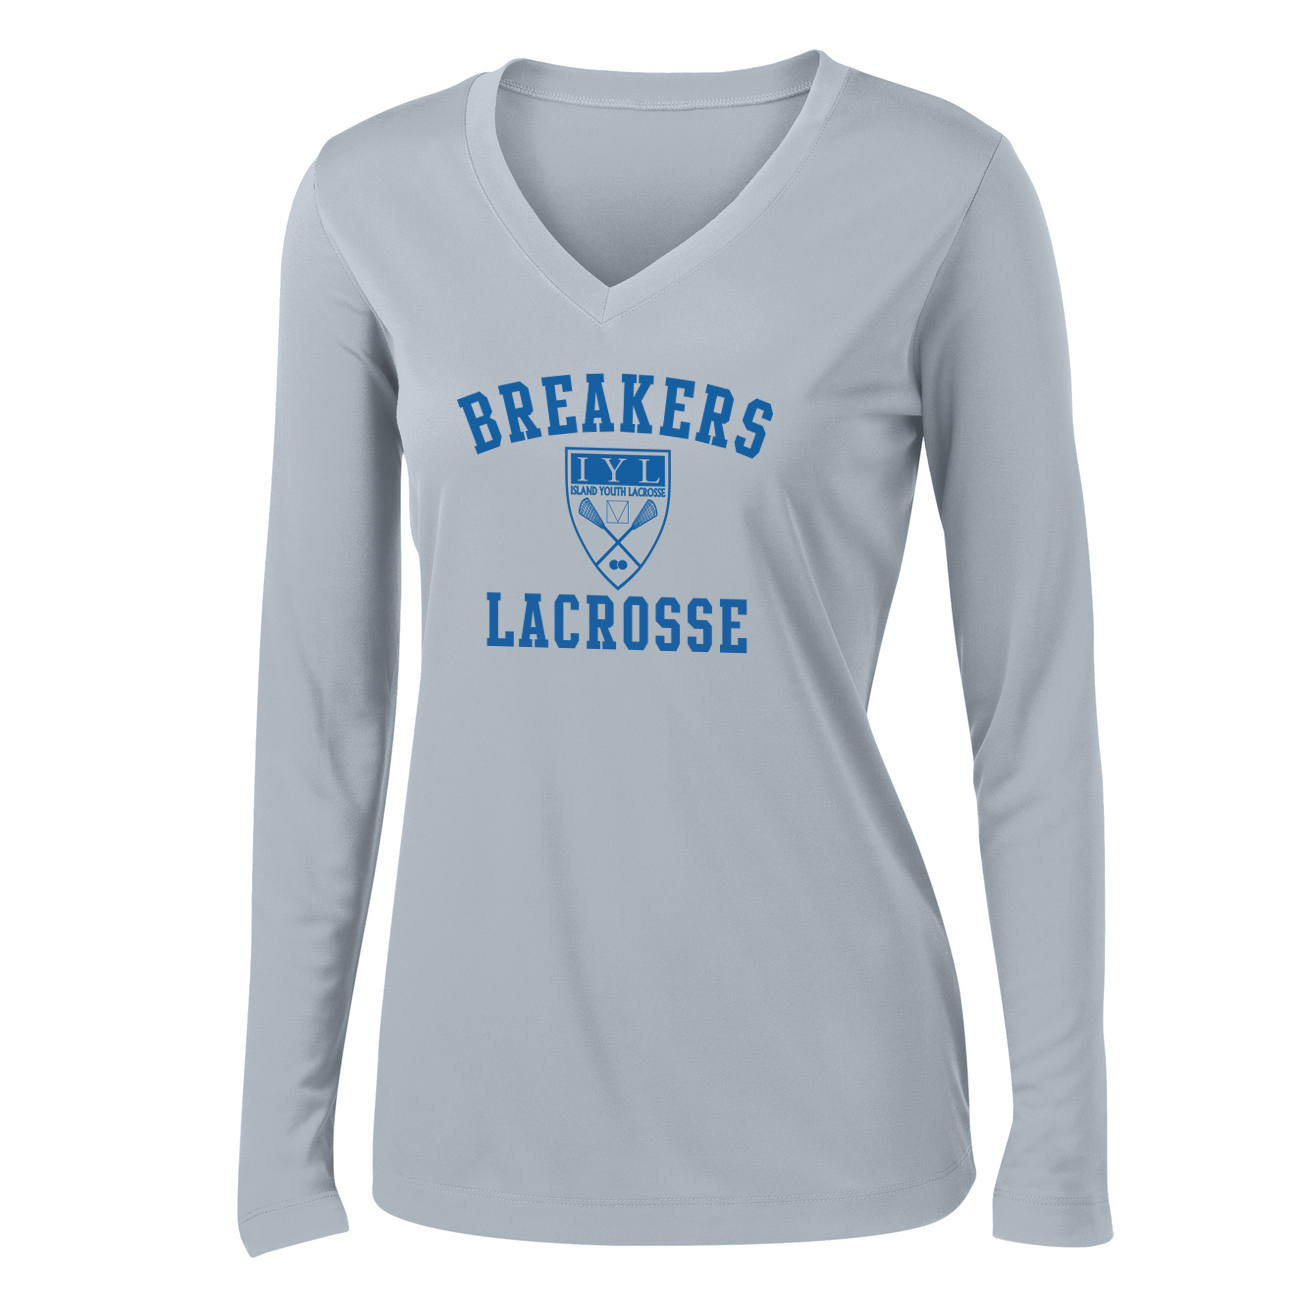 Island Youth Lacrossse - Women's Long Sleeve Tech Tee